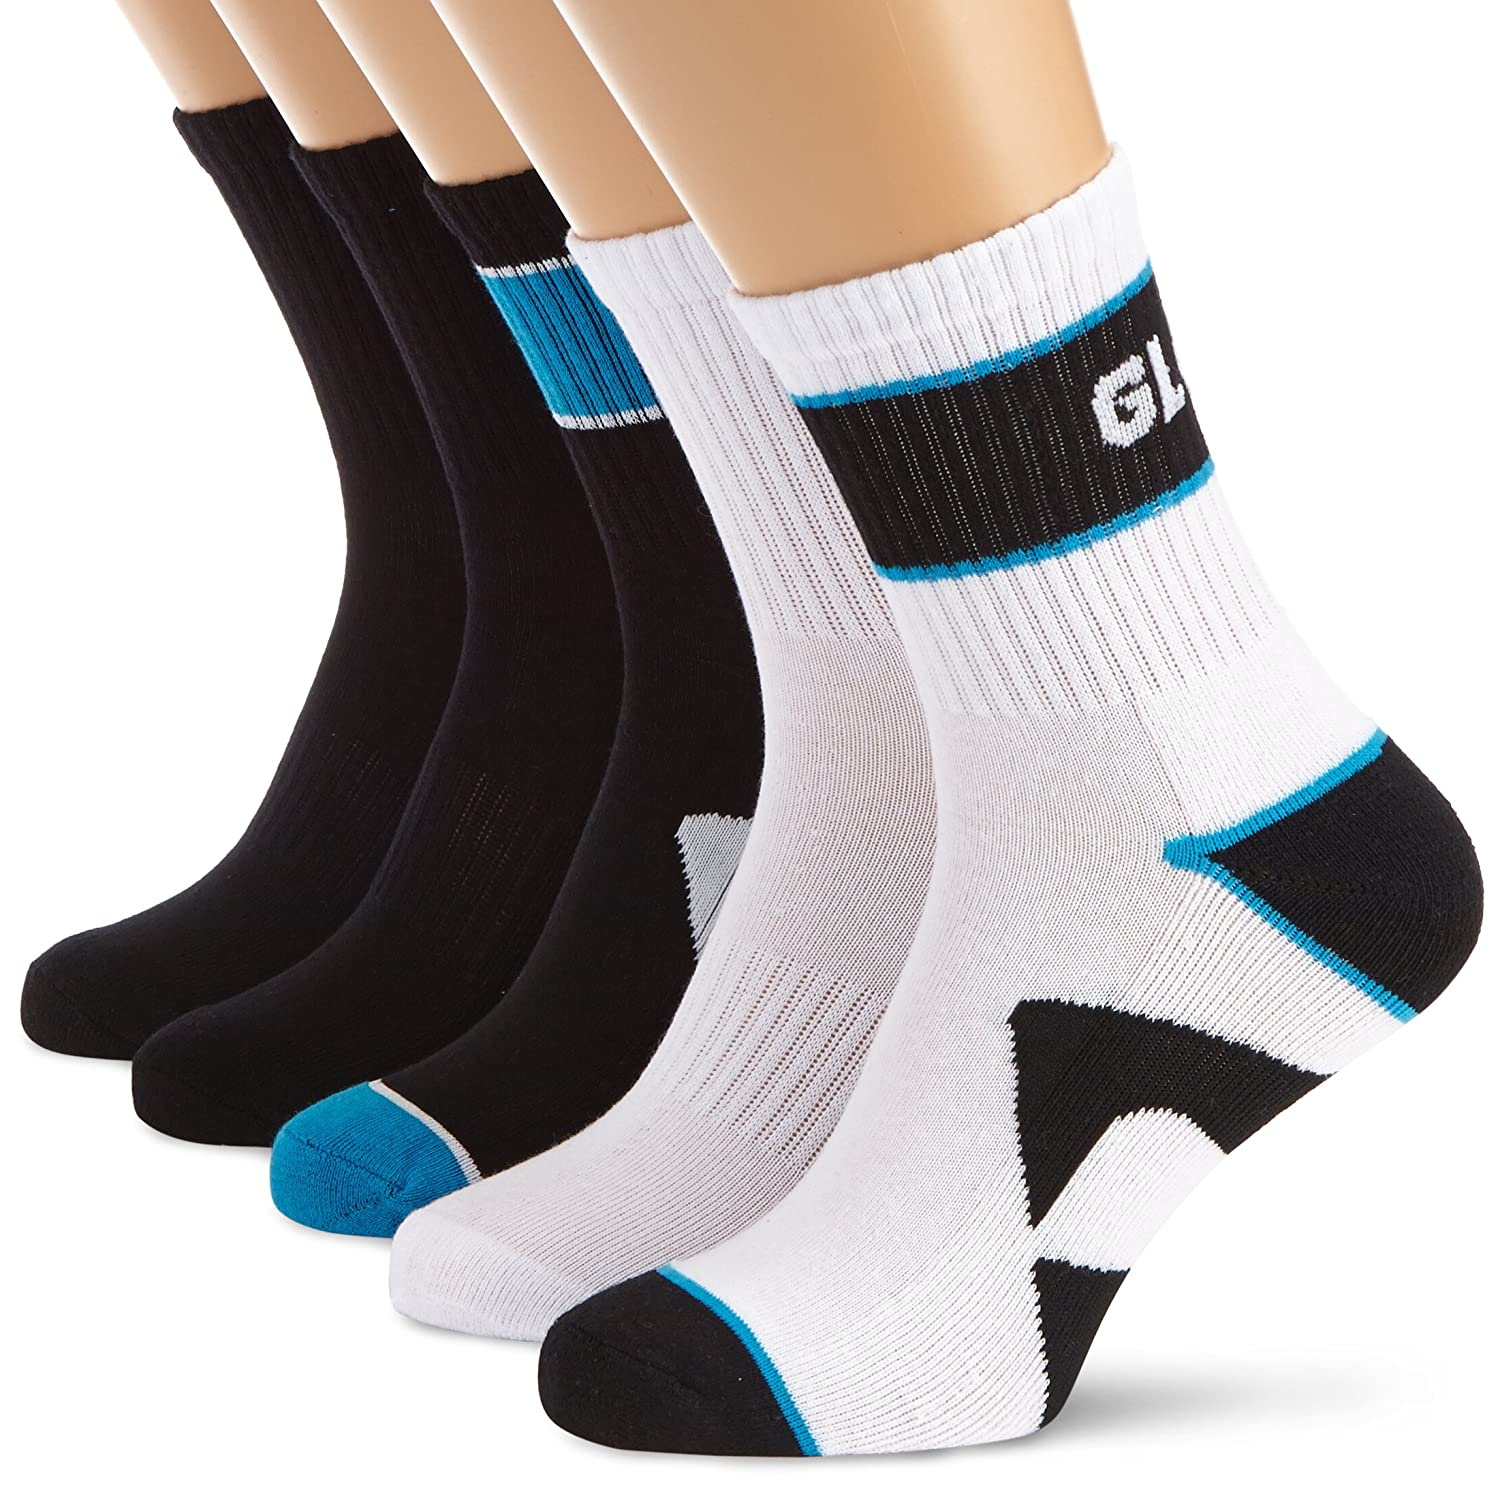 Globe Destroyer Socks Chaussettes homme - Multicolore Textile Size 7-11 lot de 5 GB70919066